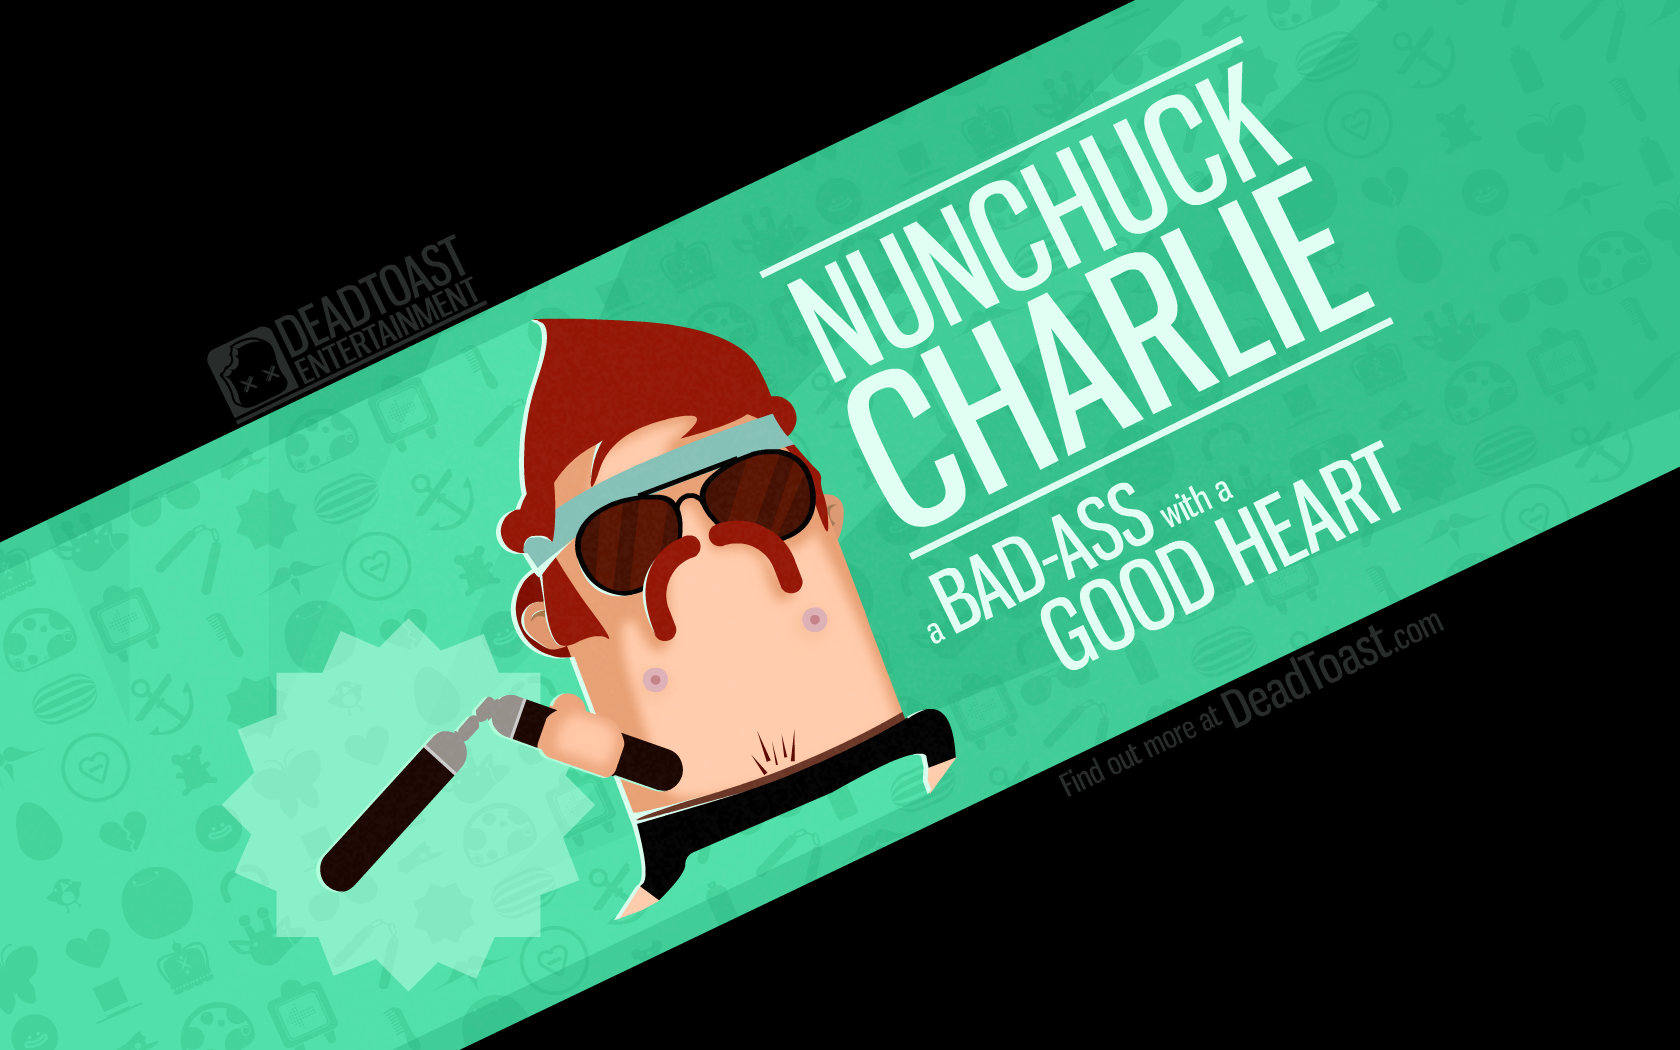 Nunchuck_Charlie-Bad_ass_Good_heart_hi_res.png